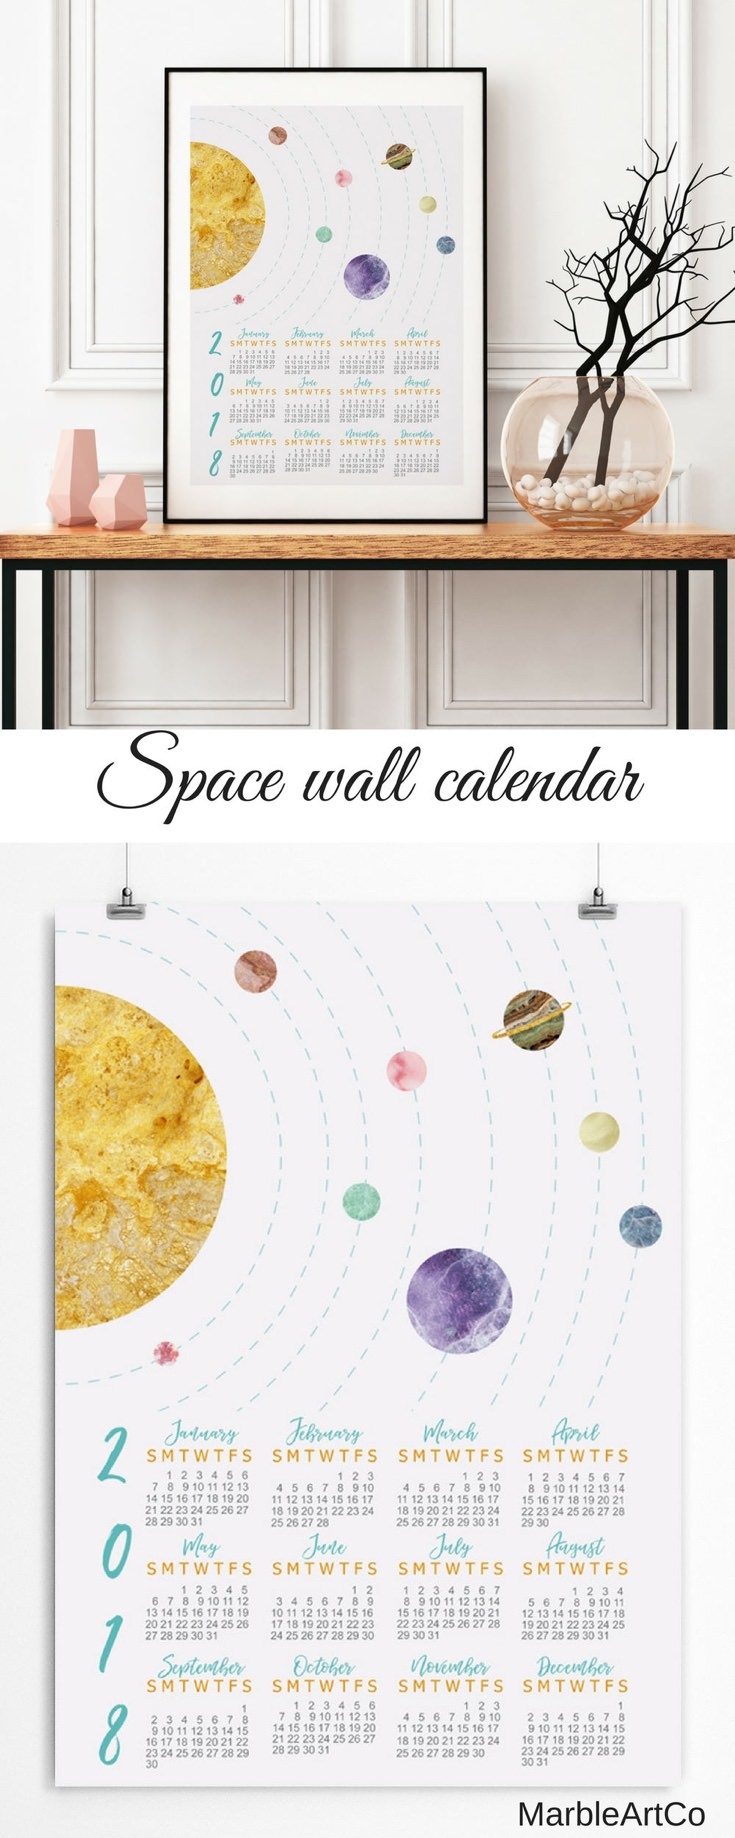 I love the collaged planets in this 2018 space art wall calendar! It features the full year's calendar, all on one print.